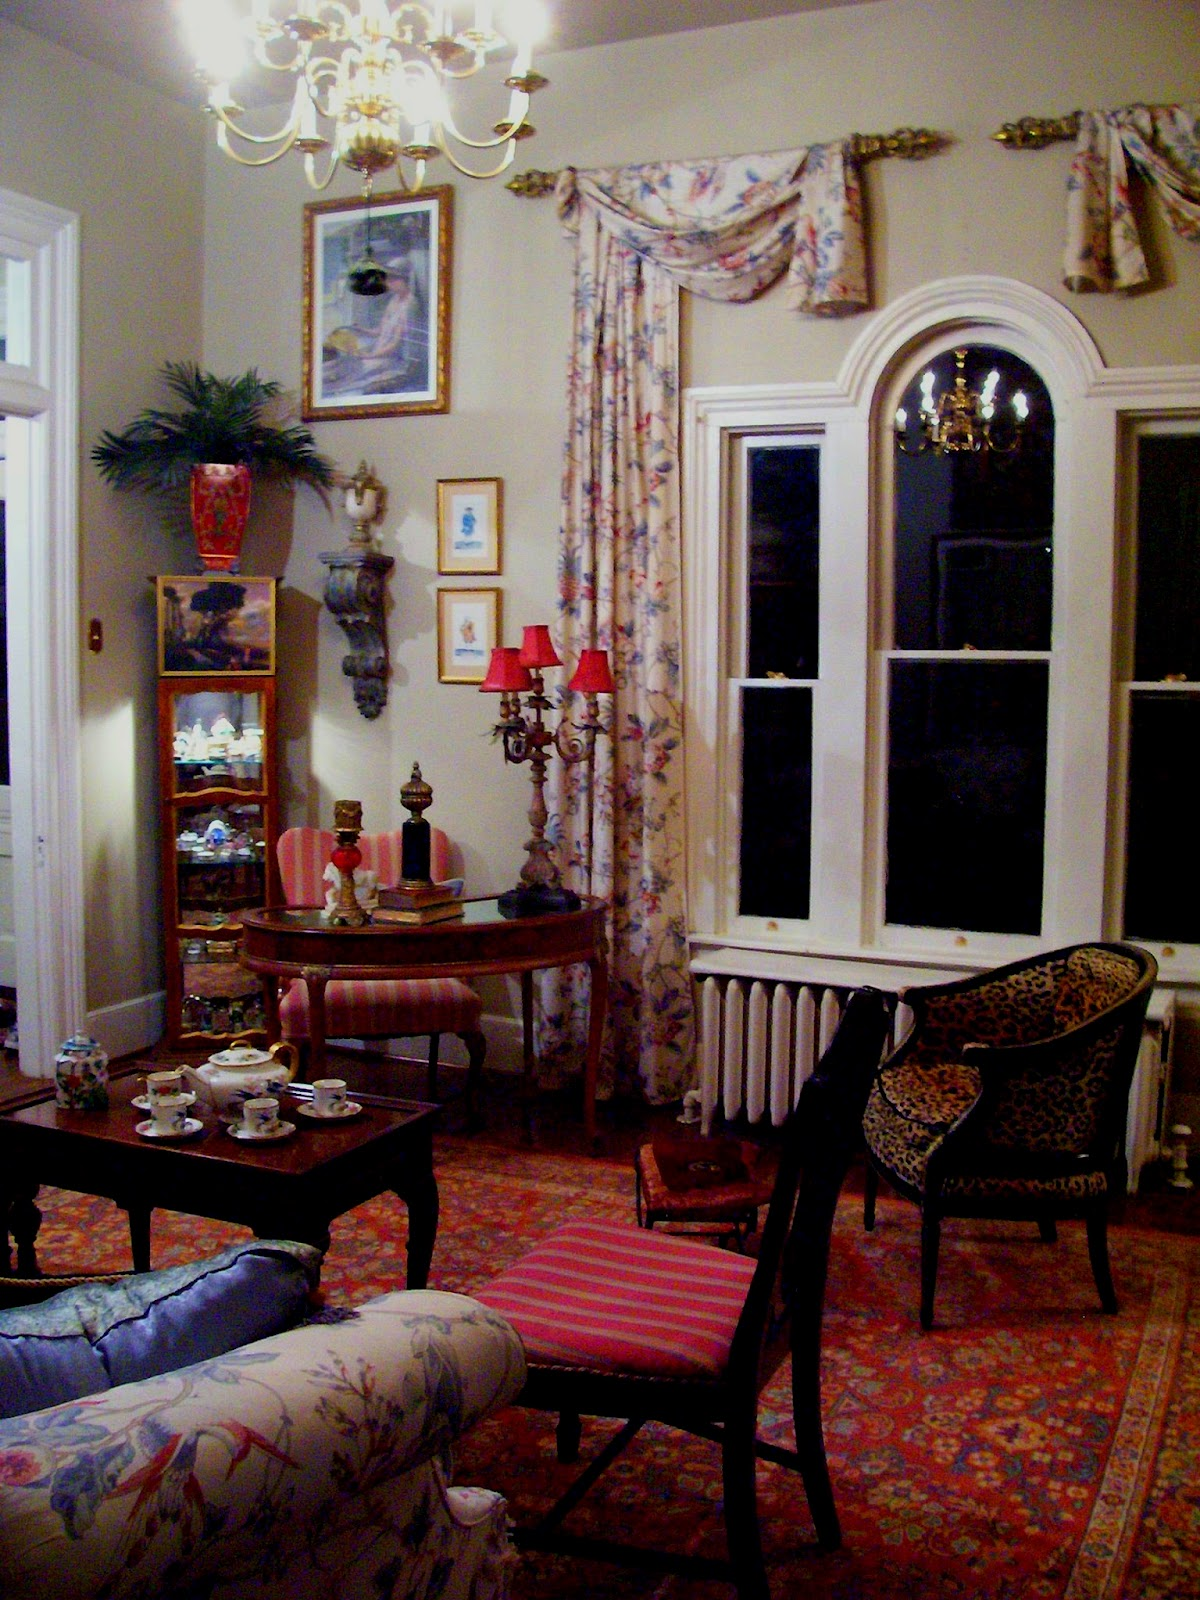 Decor Living Room Ideas: Eye For Design: Victorian Style Living Room